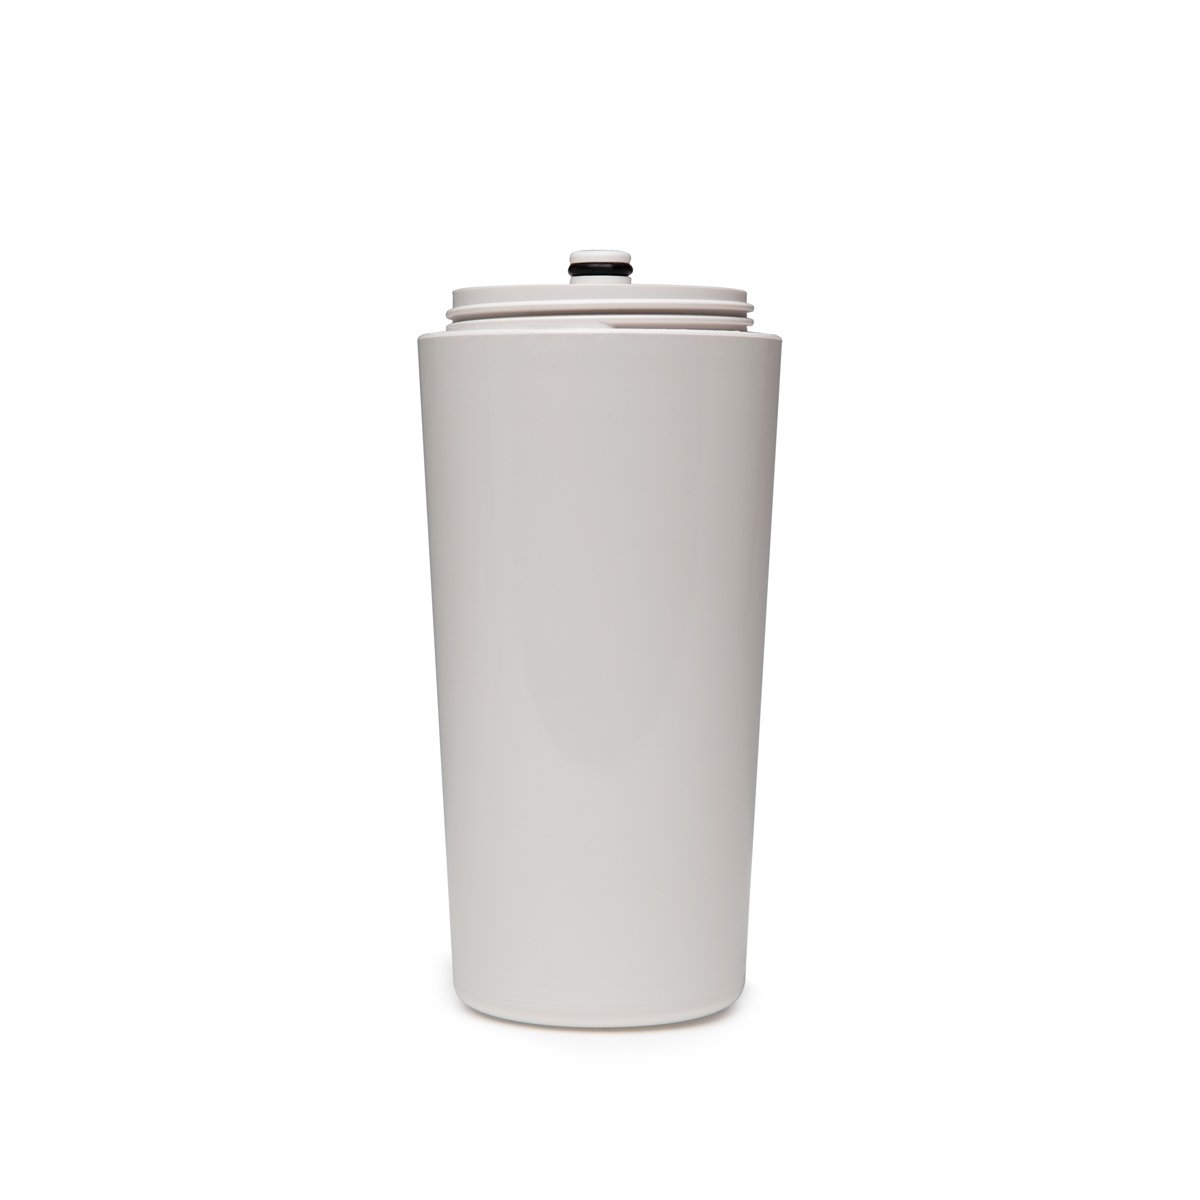 Aquasana Replacement Filter Cartridge for Shower Filters